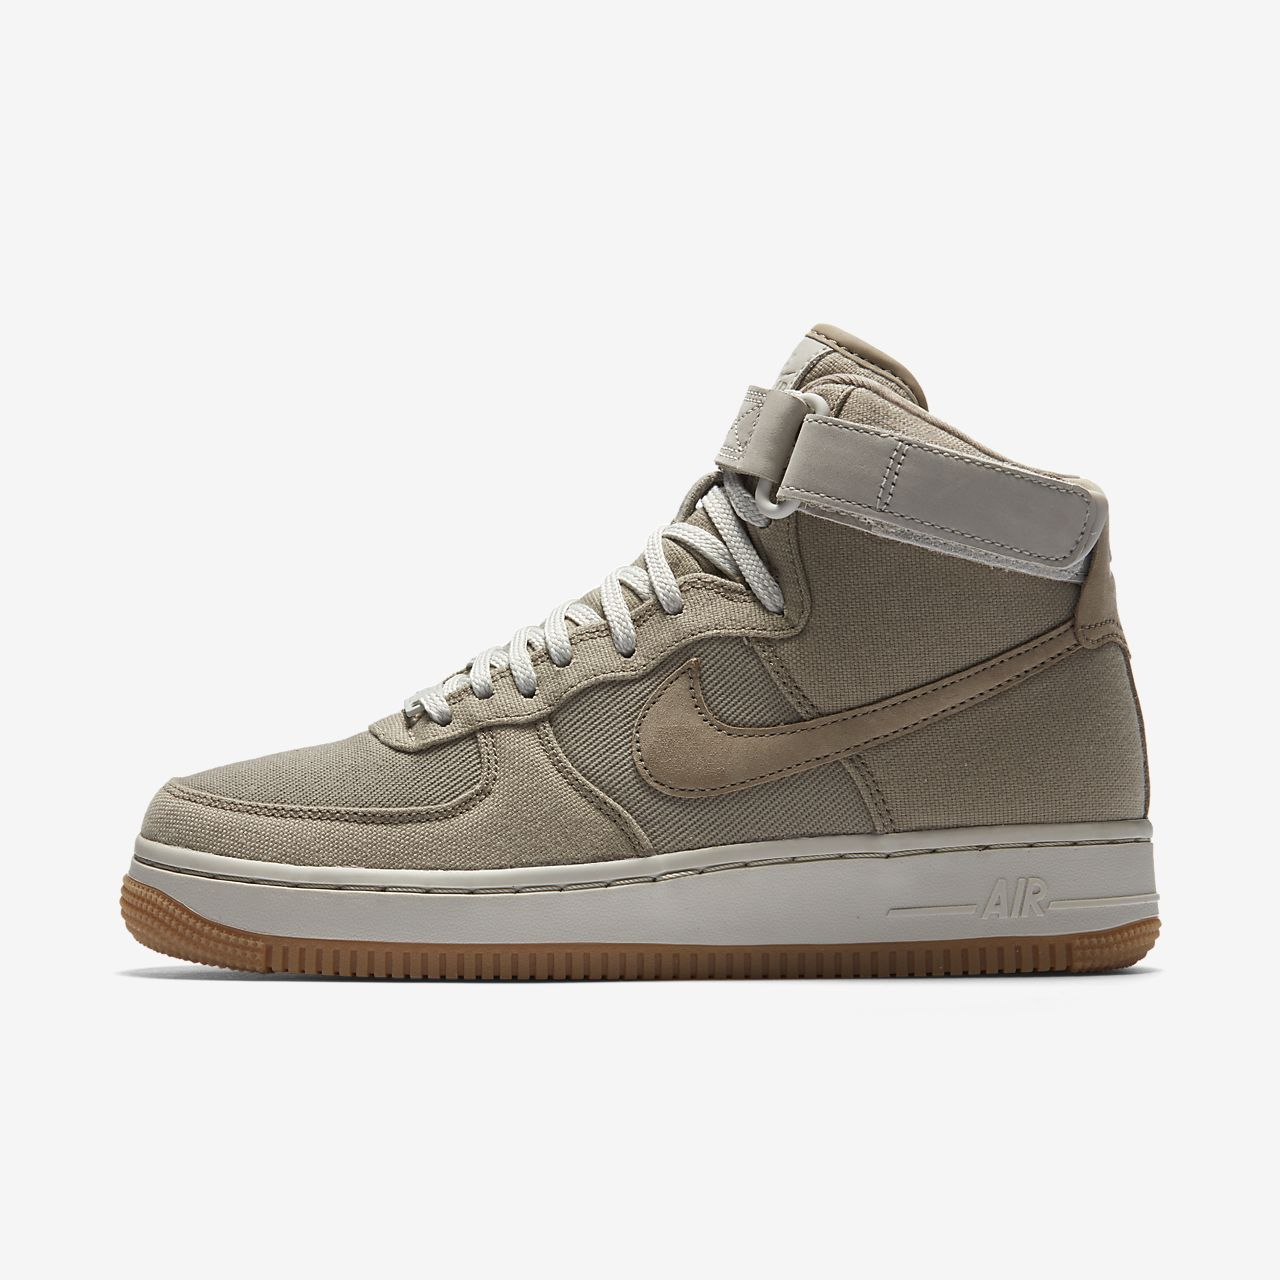 AIR FORCE 1 HI UT - FOOTWEAR - High-tops & sneakers Nike YKw2txA